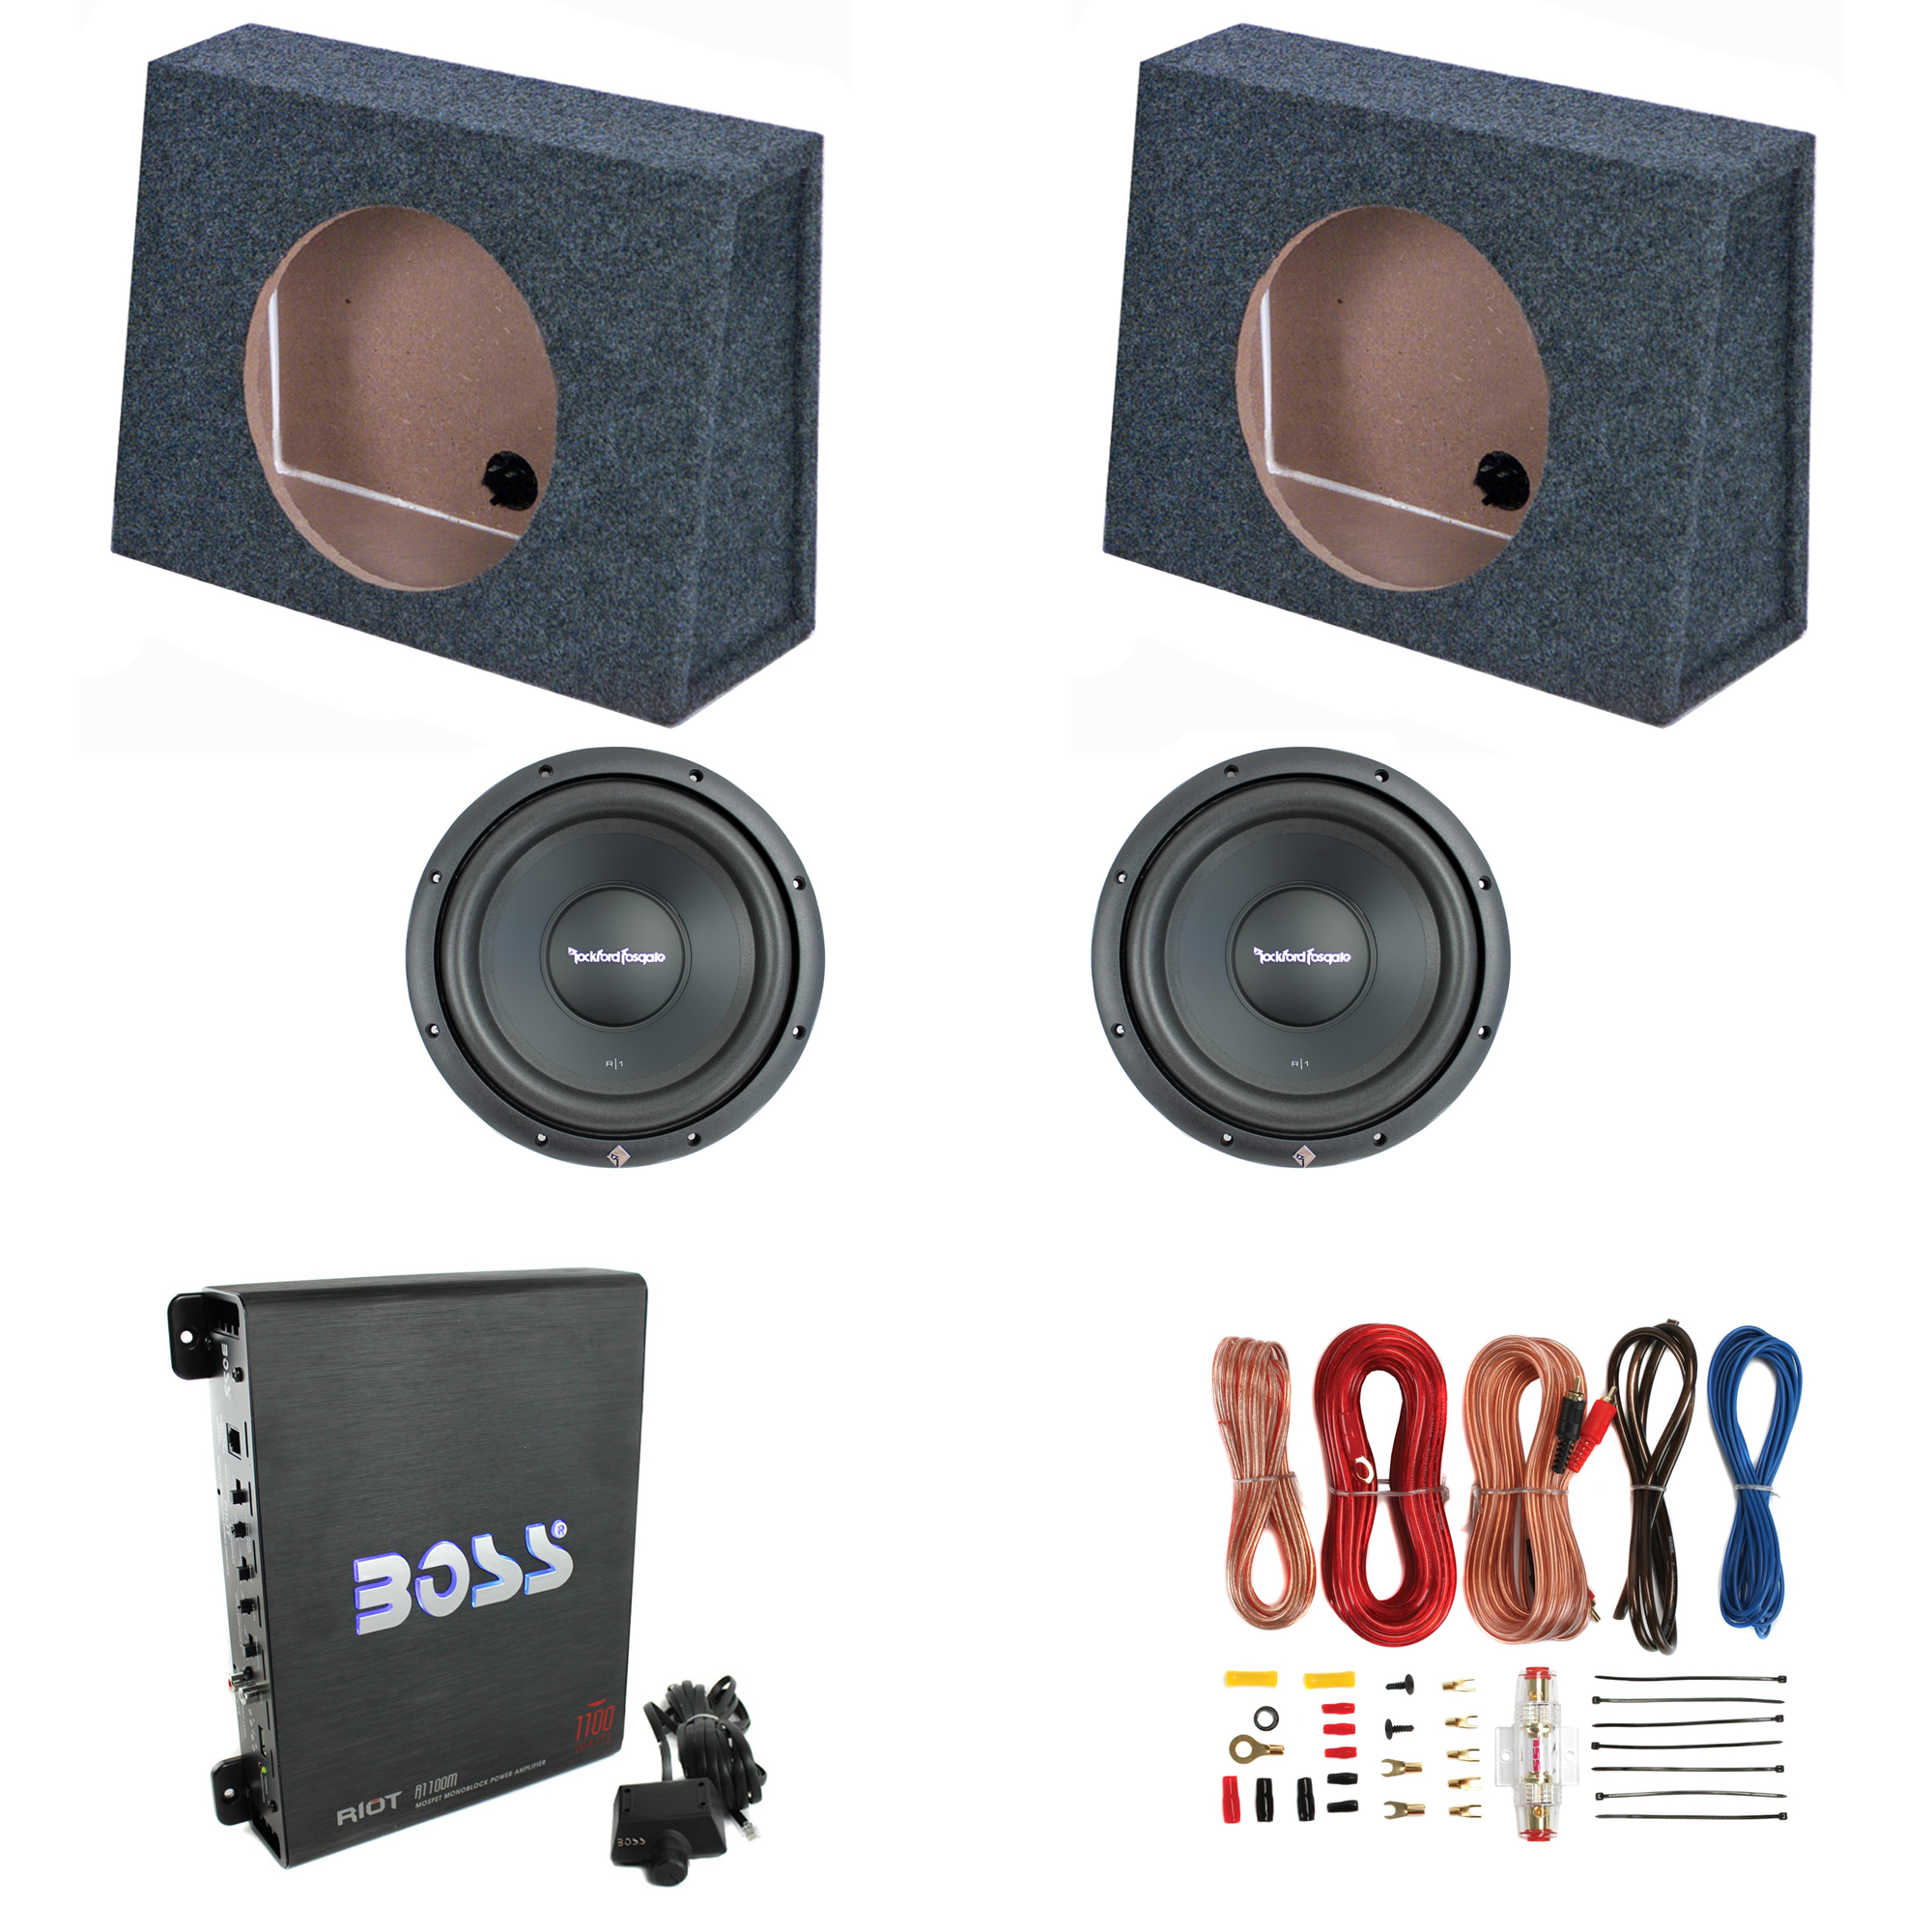 Rockford 10 Subwoofers 2 Pack Sub Boxes 1100w Powered Subwoofer Wiring 300w Power Amplifier Amp Wire Kit